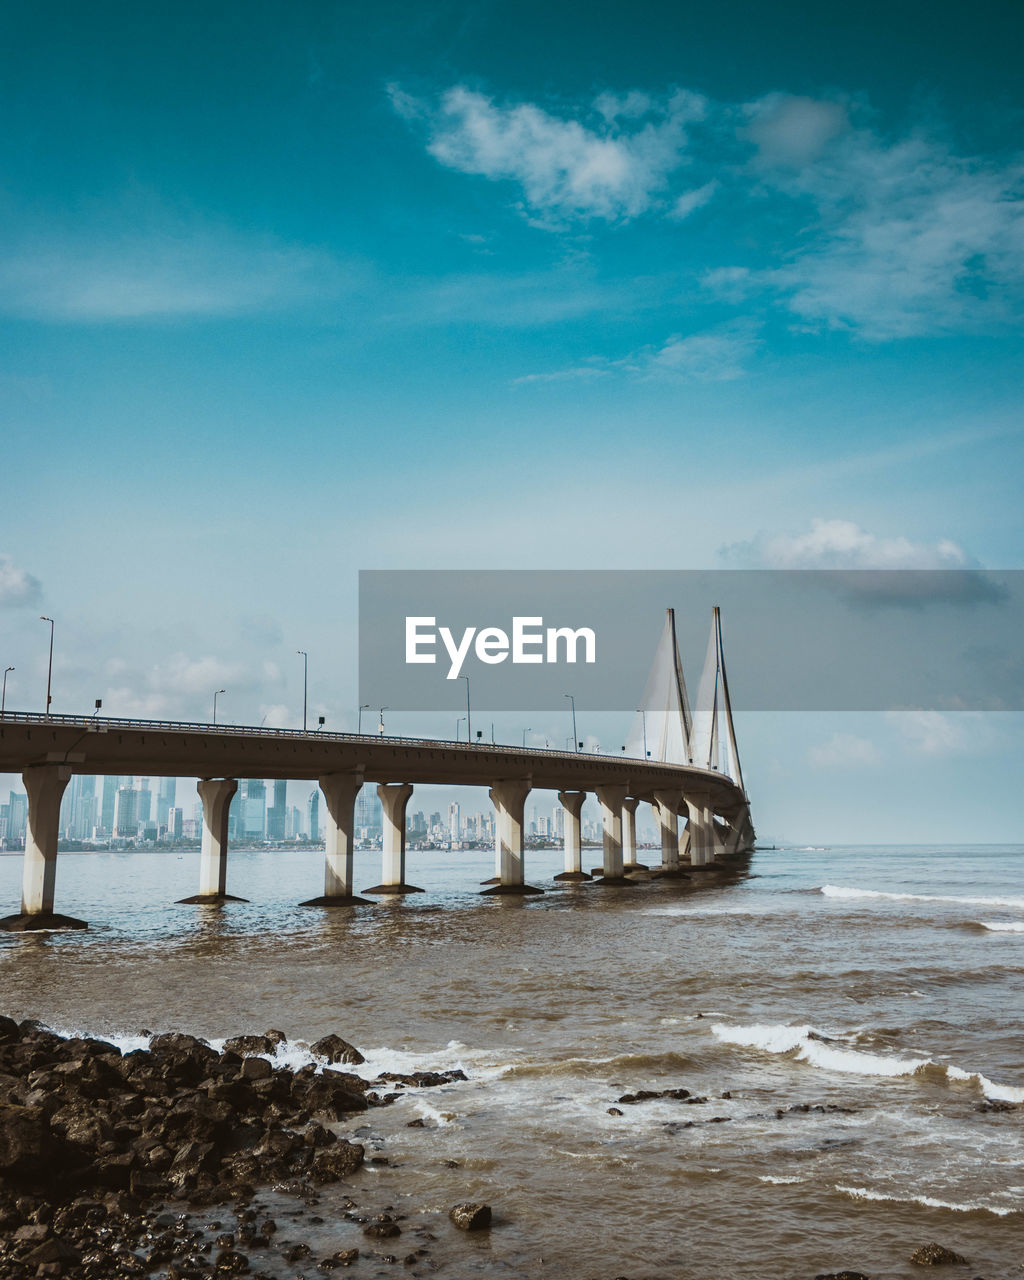 water, bridge, sky, bridge - man made structure, built structure, connection, cloud - sky, sea, architecture, beach, land, transportation, day, nature, no people, beauty in nature, scenics - nature, outdoors, horizon over water, architectural column